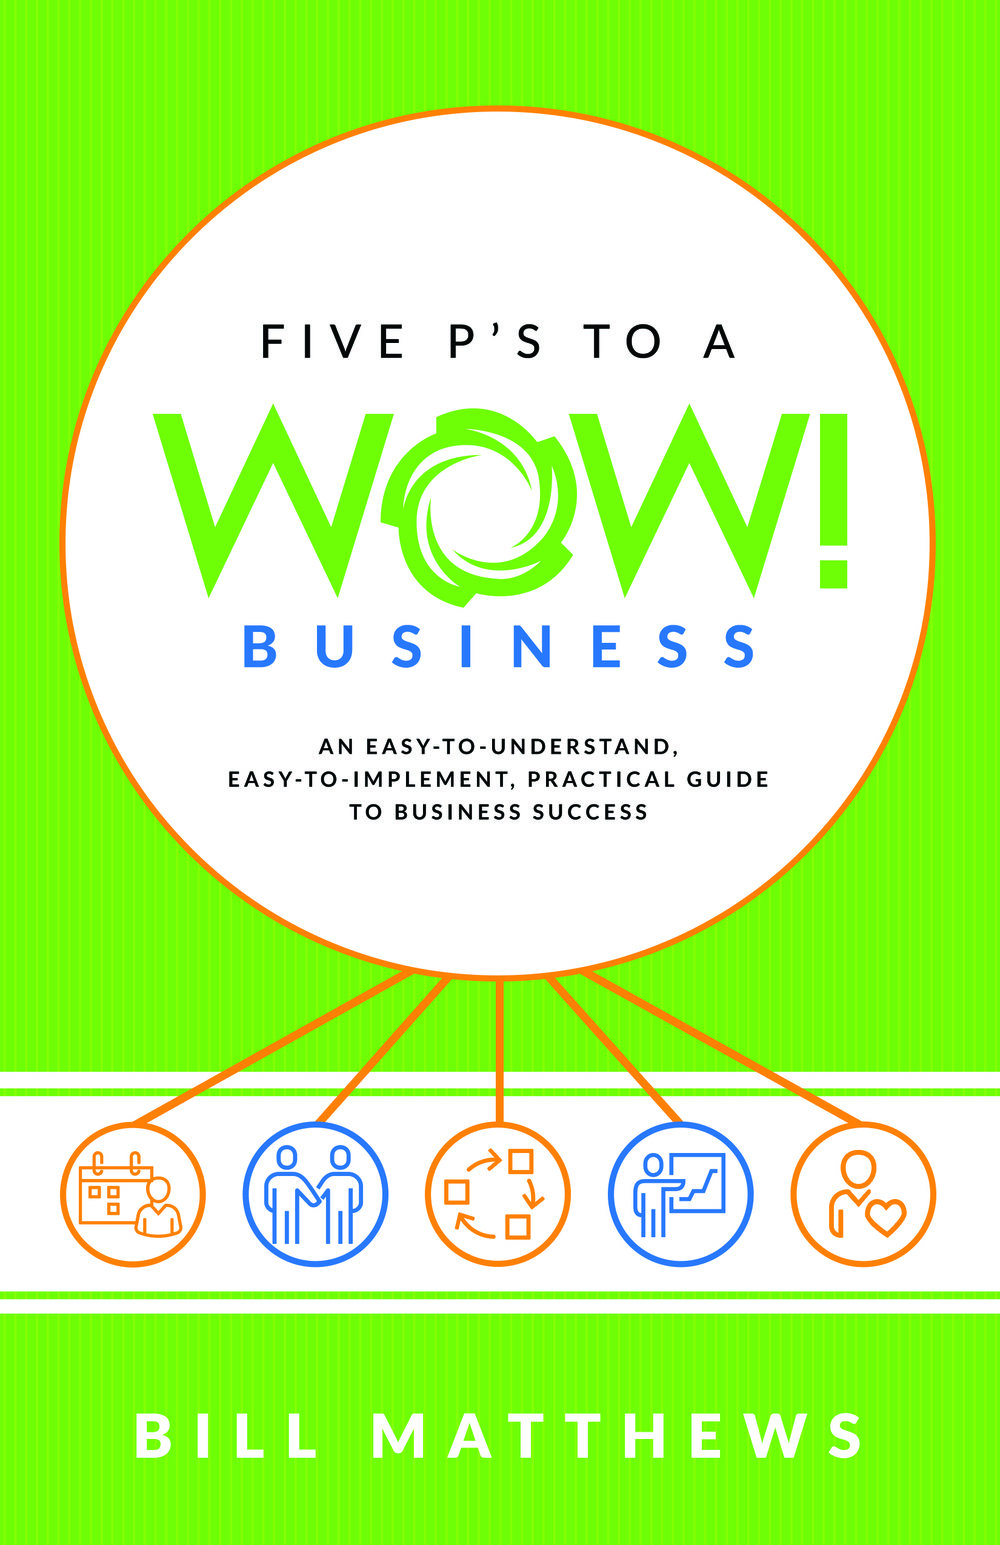 Five P's to a Wow Business - By bill matthews